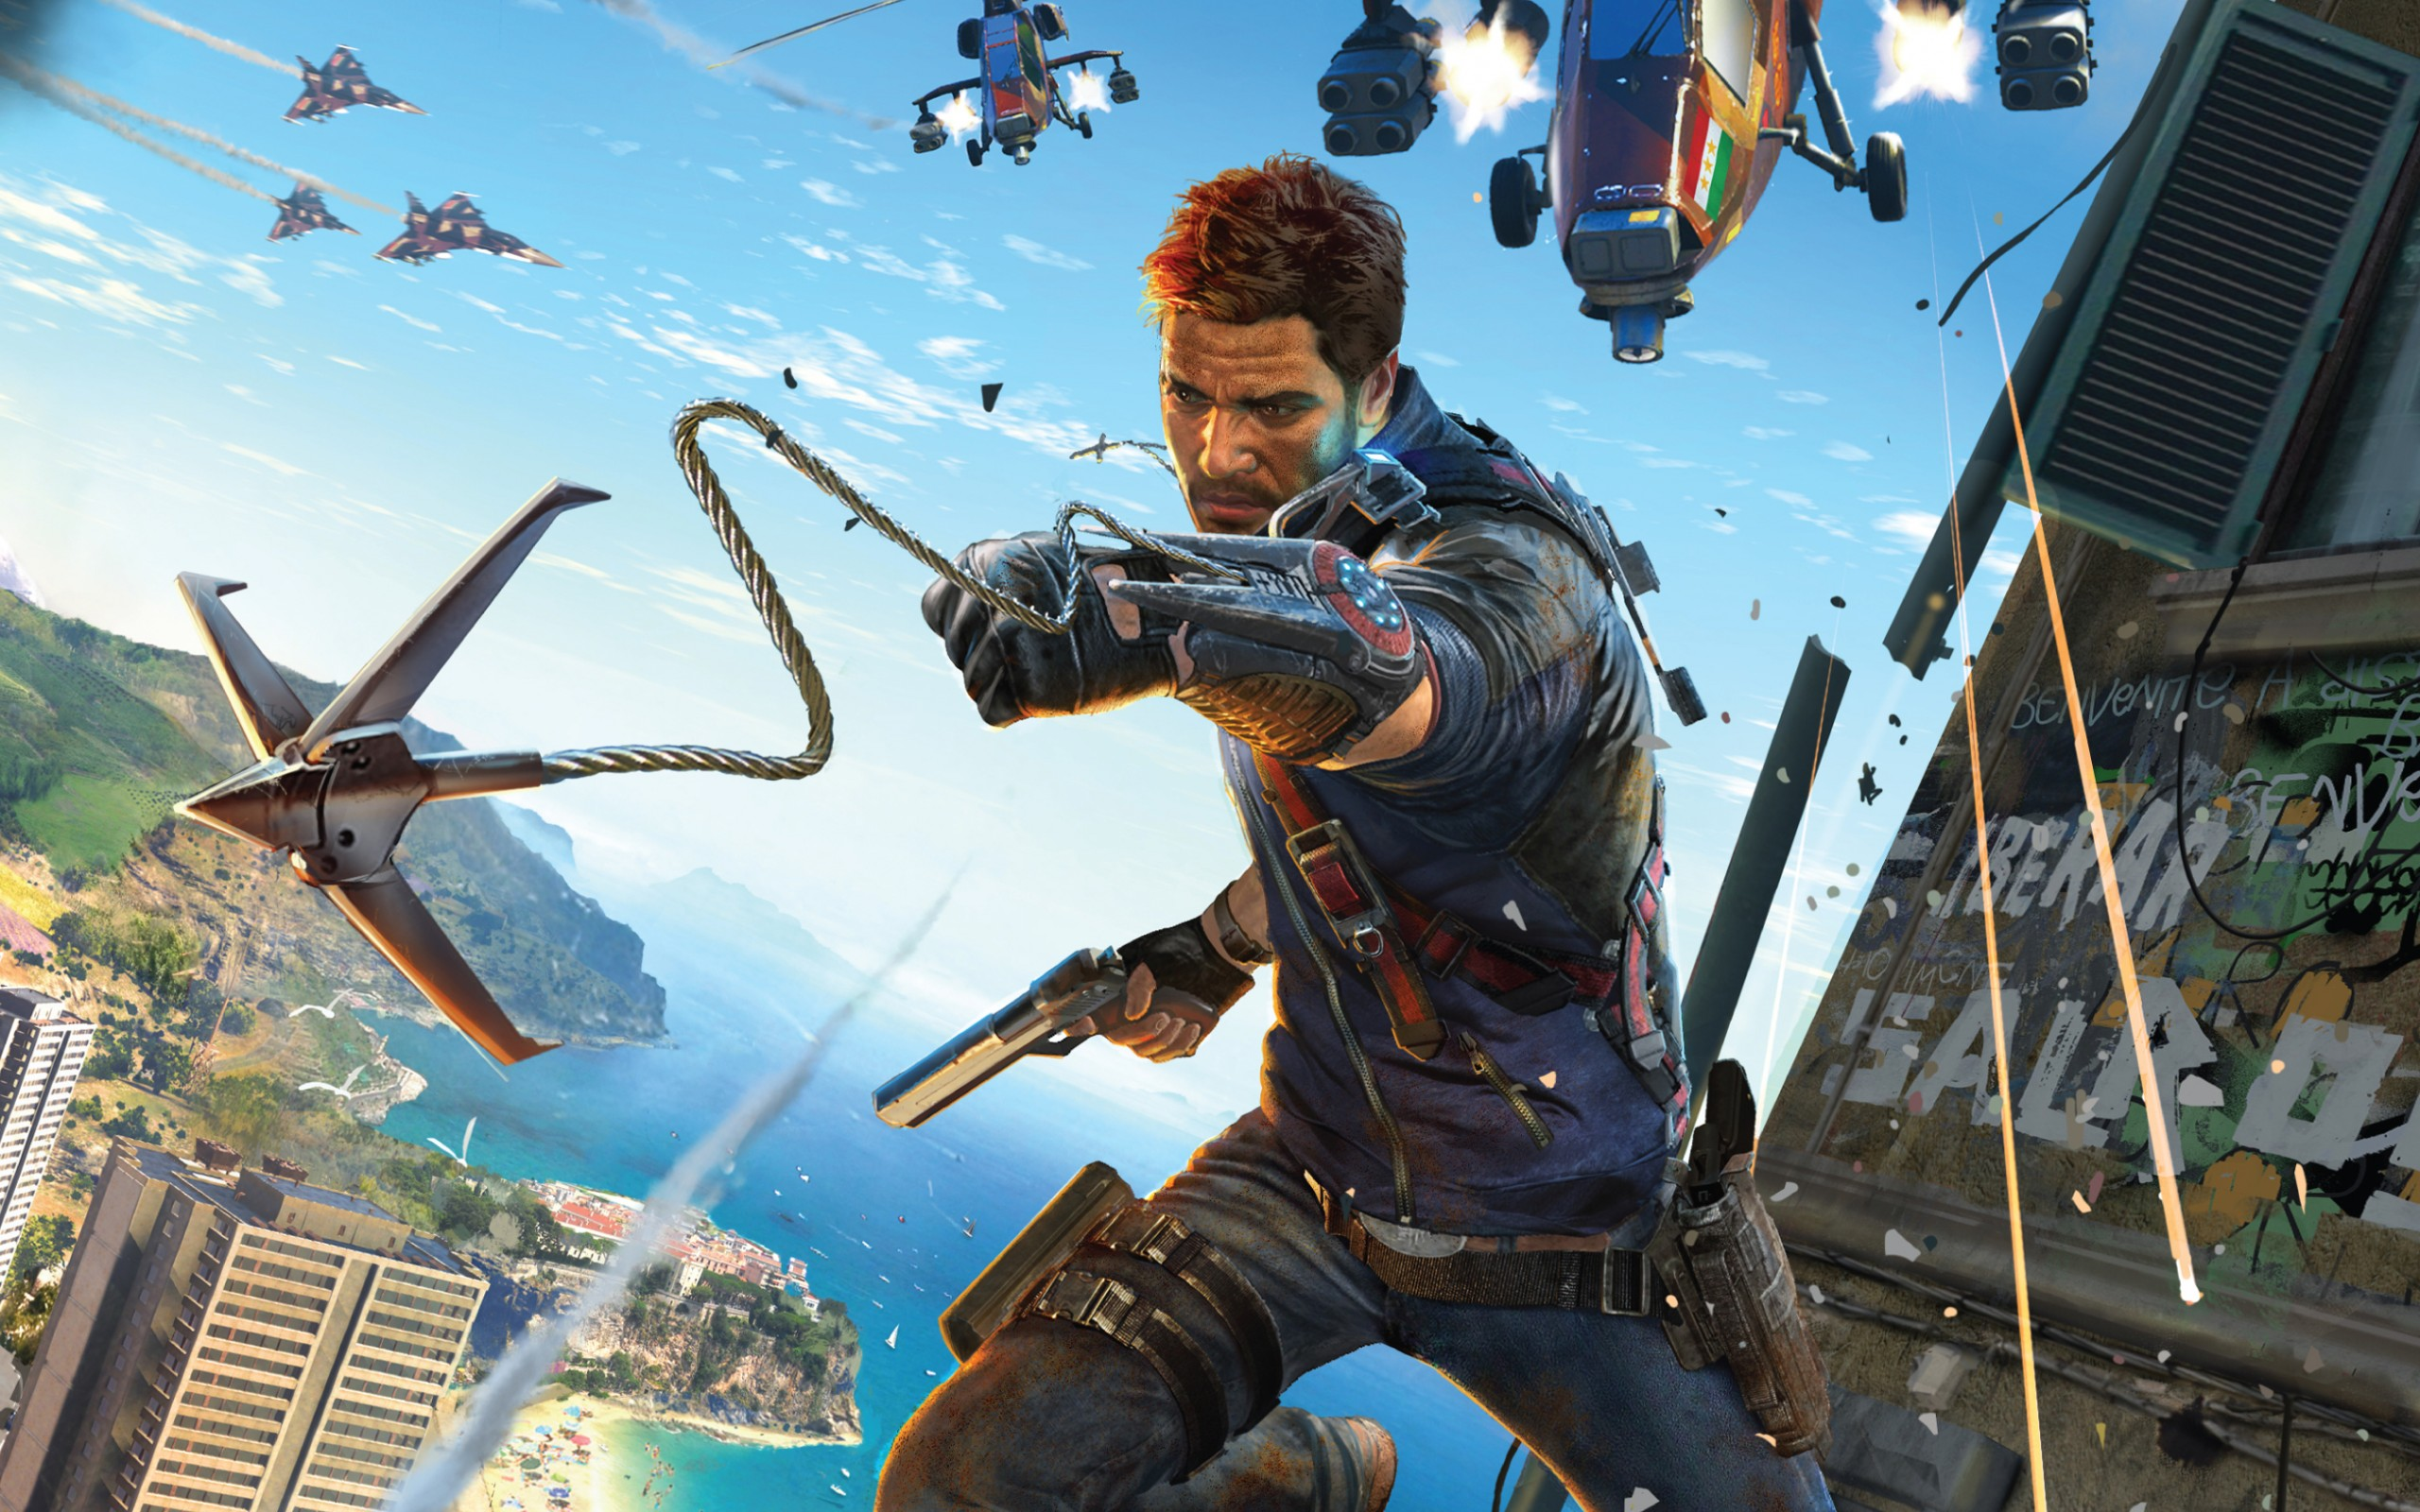 HD Wallpapers Just Cause 3